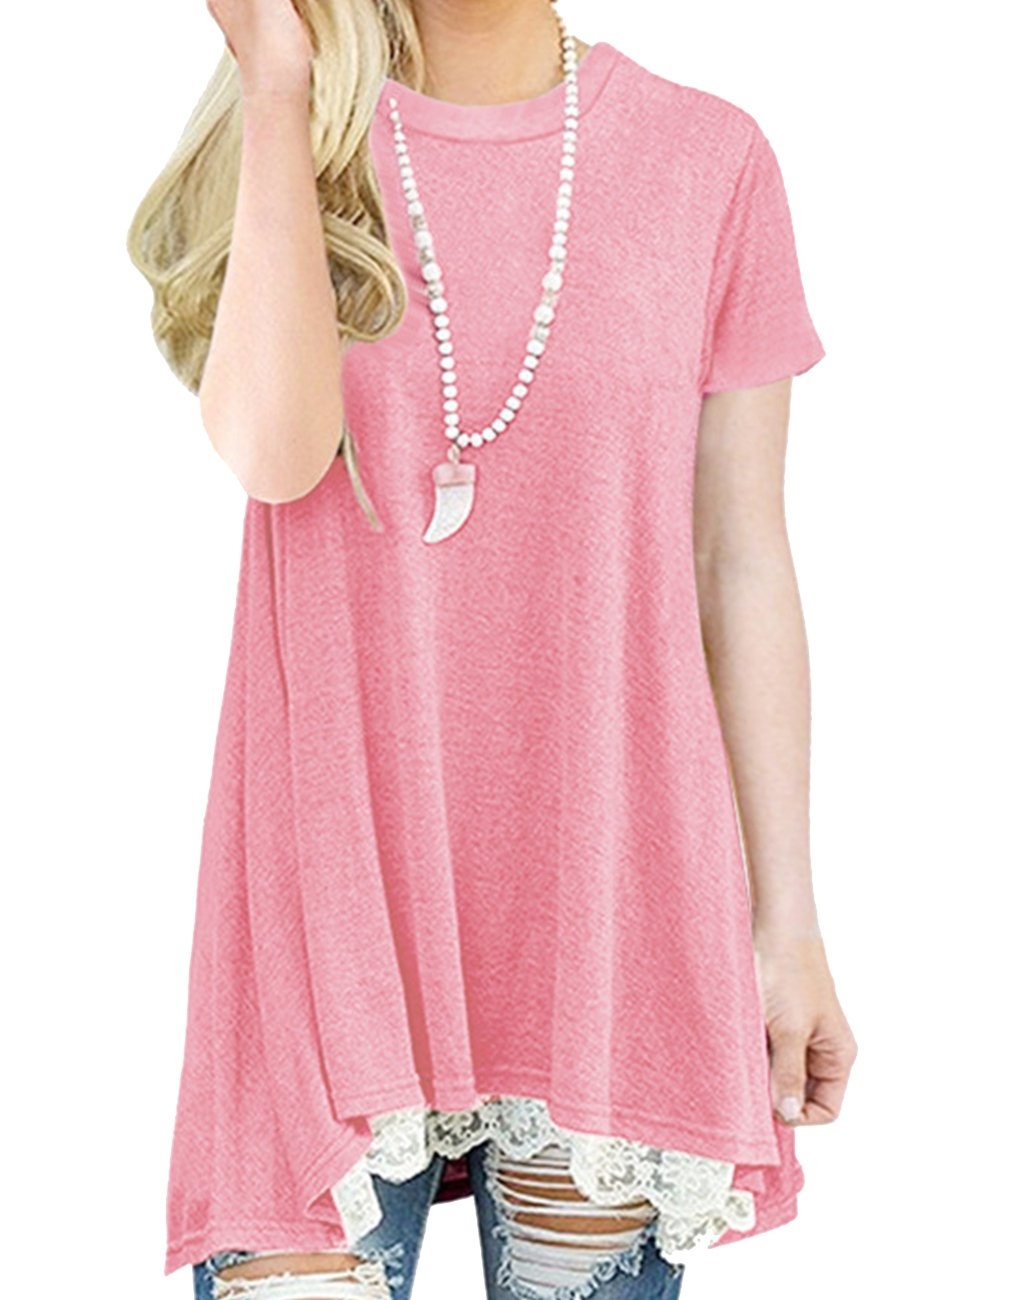 Women's Summer Short Sleeve Tunic Tops Lace Trim Tops Casual Blouse T Shirts (XL, Pink)